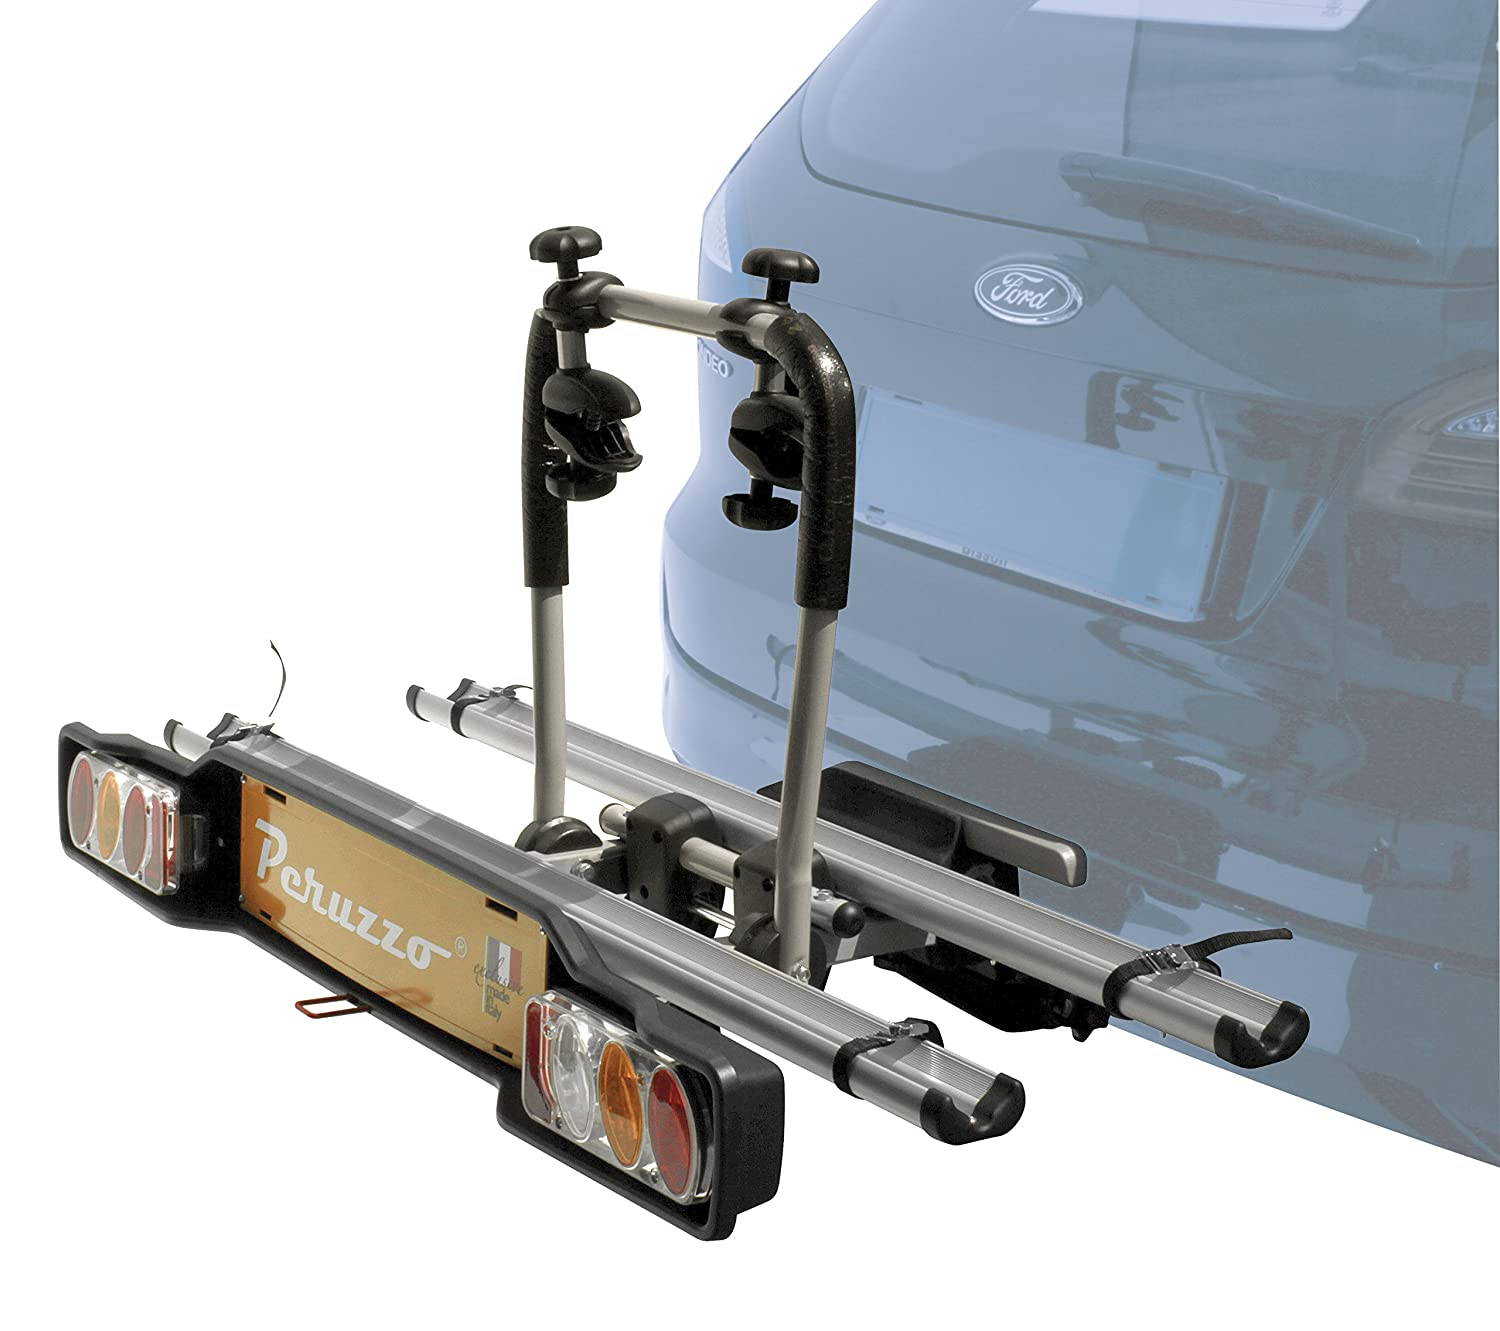 Peruzzo Rear Carrier Bicycle Rack